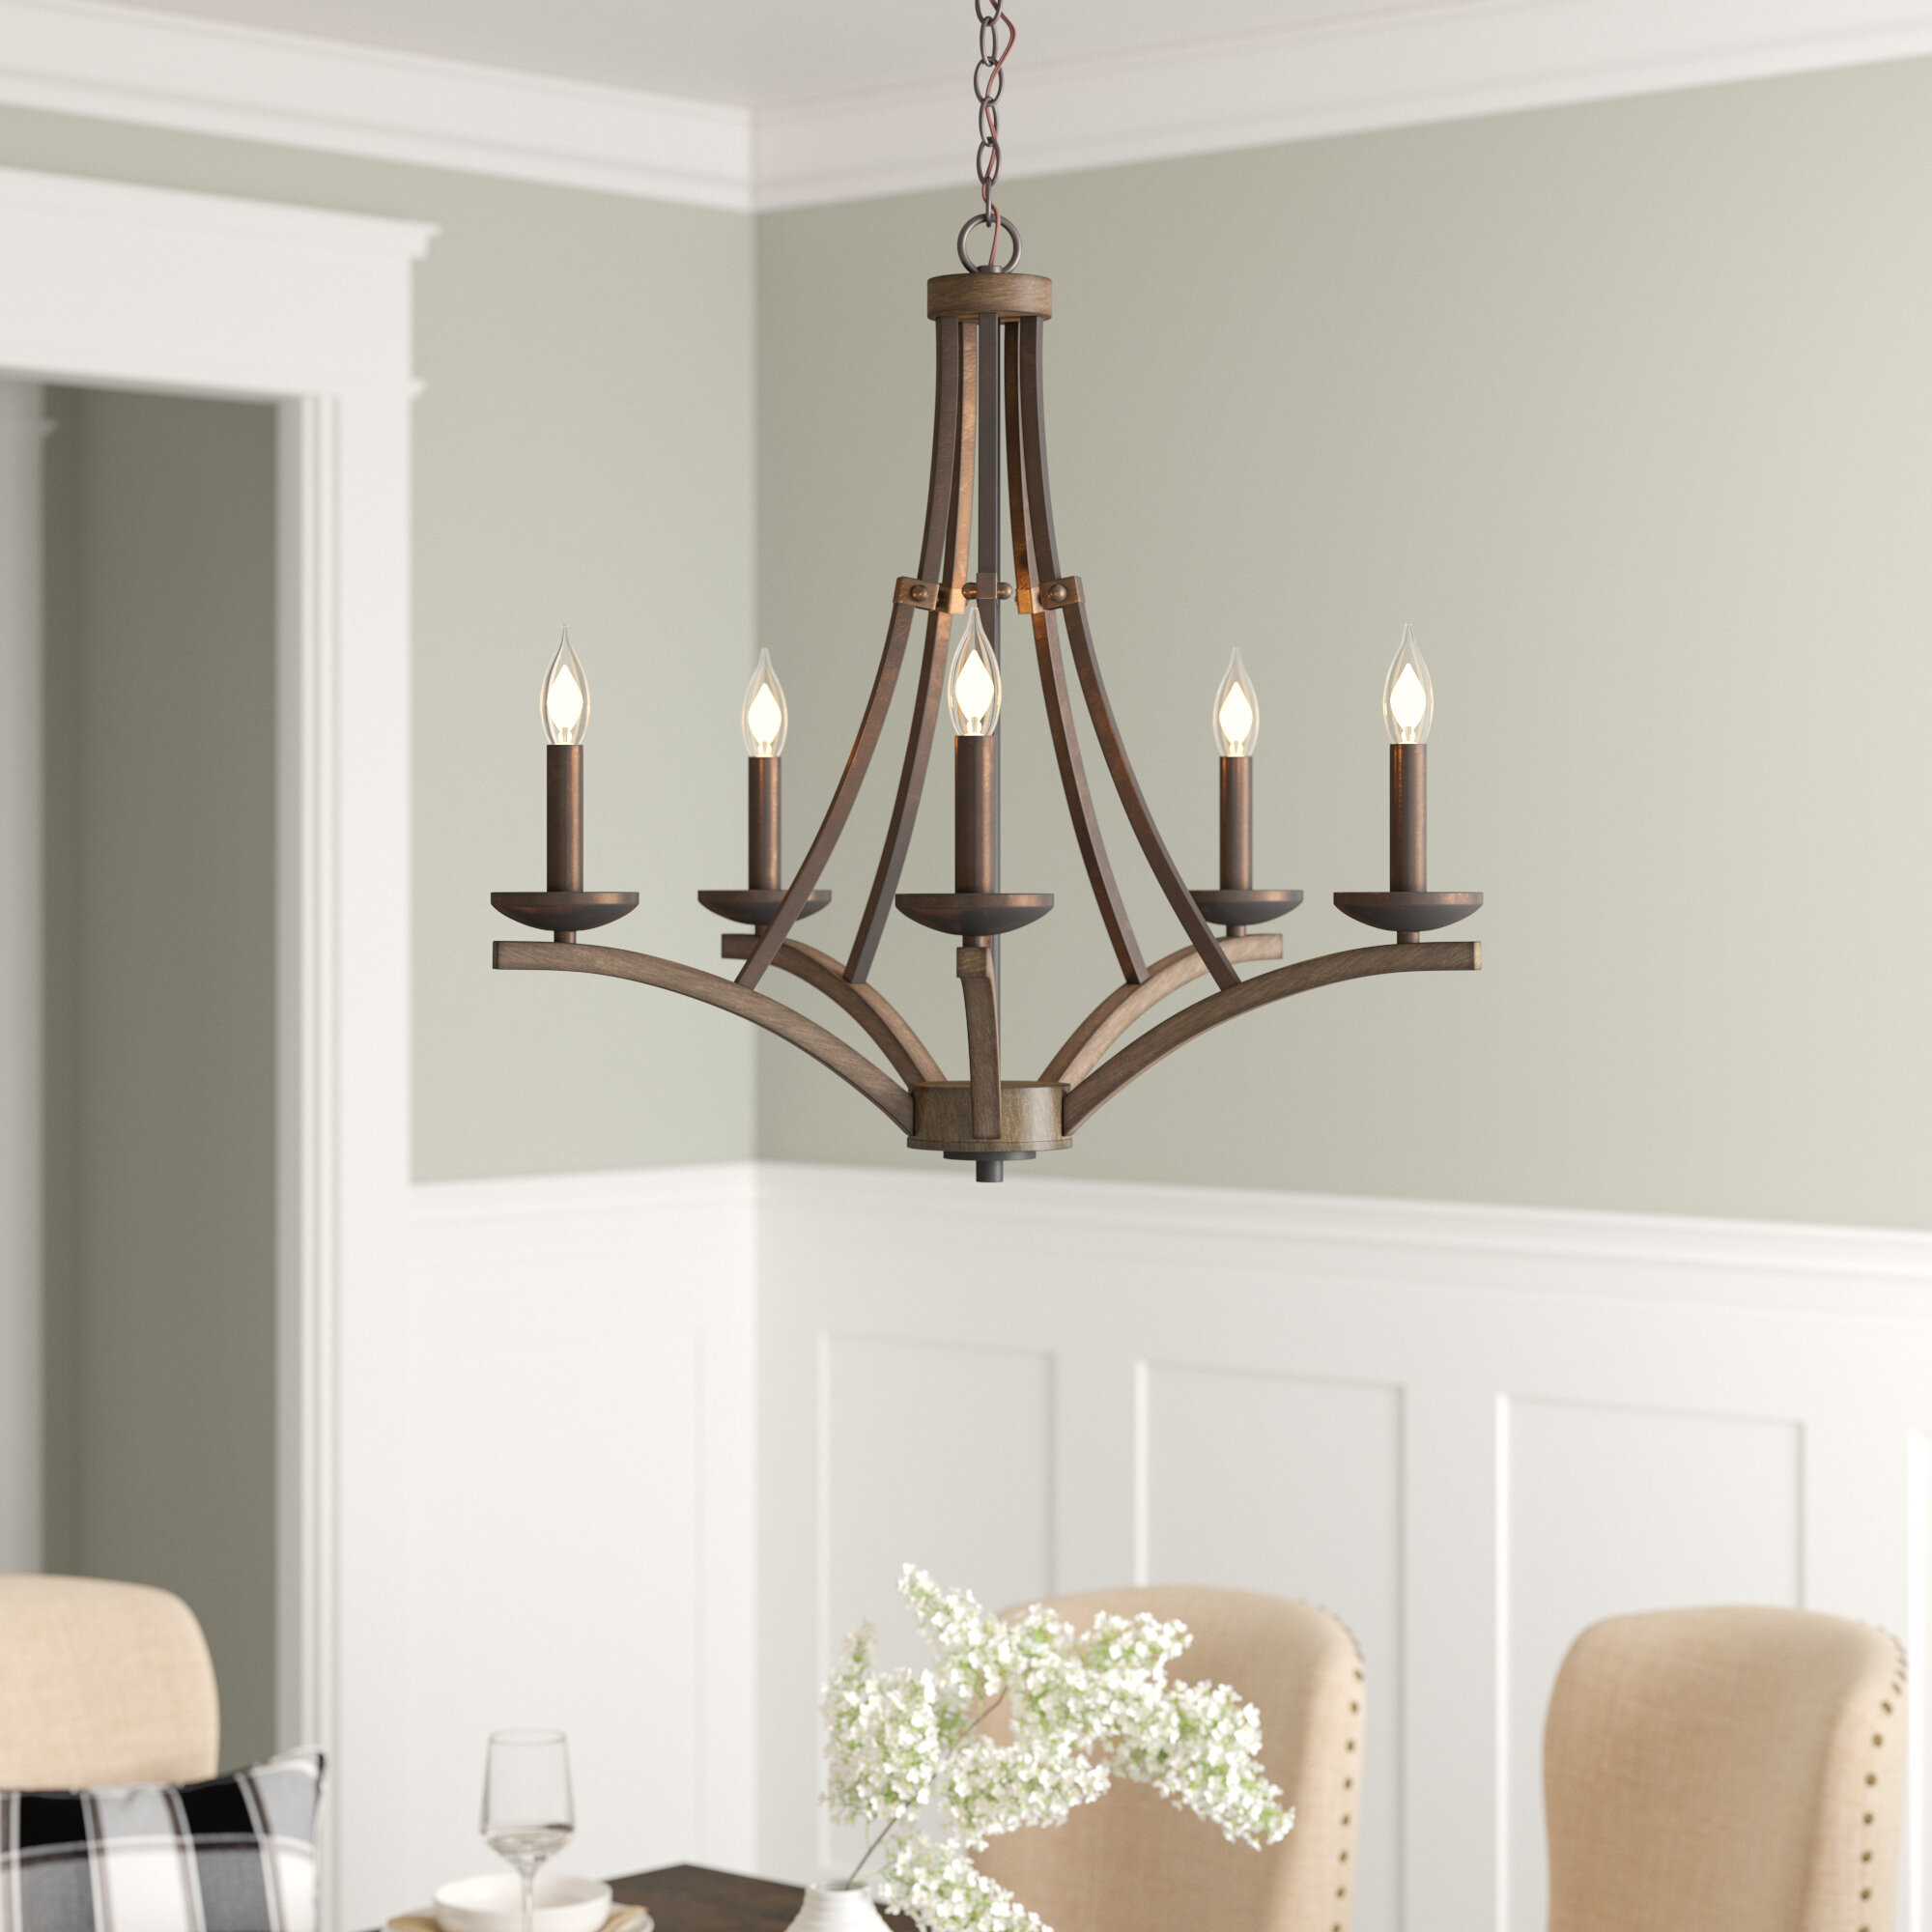 Wireman 5 Light Candle Style Chandelier Intended For Kenna 5 Light Empire Chandeliers (View 10 of 30)